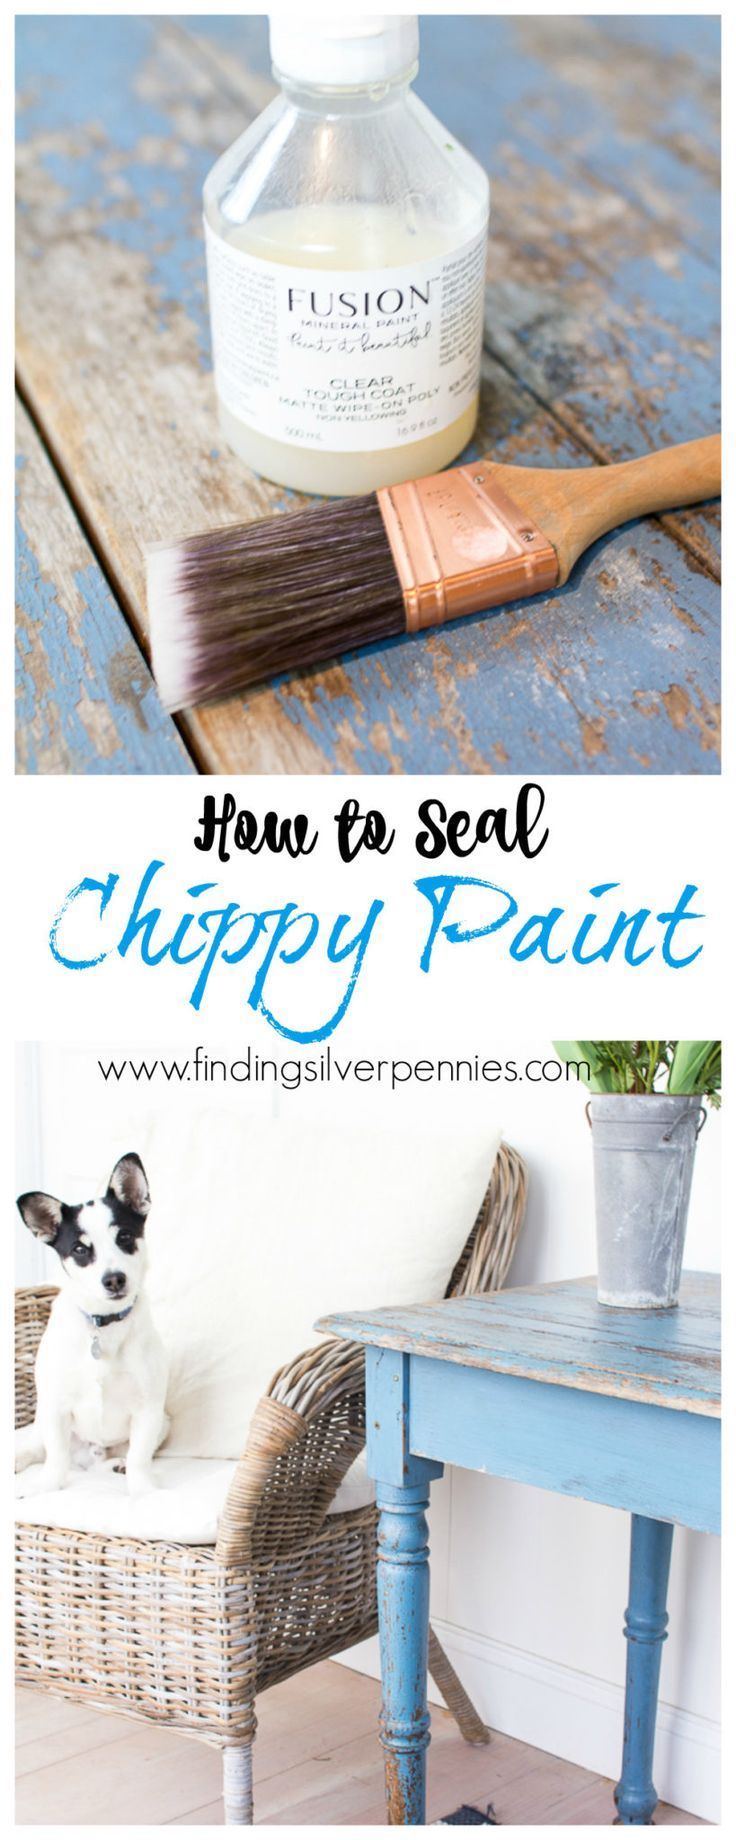 How To Seal Chippy Paint Finding Silver Pennies Chippy Paint Technique Chippy Paint Chippy Painted Furniture